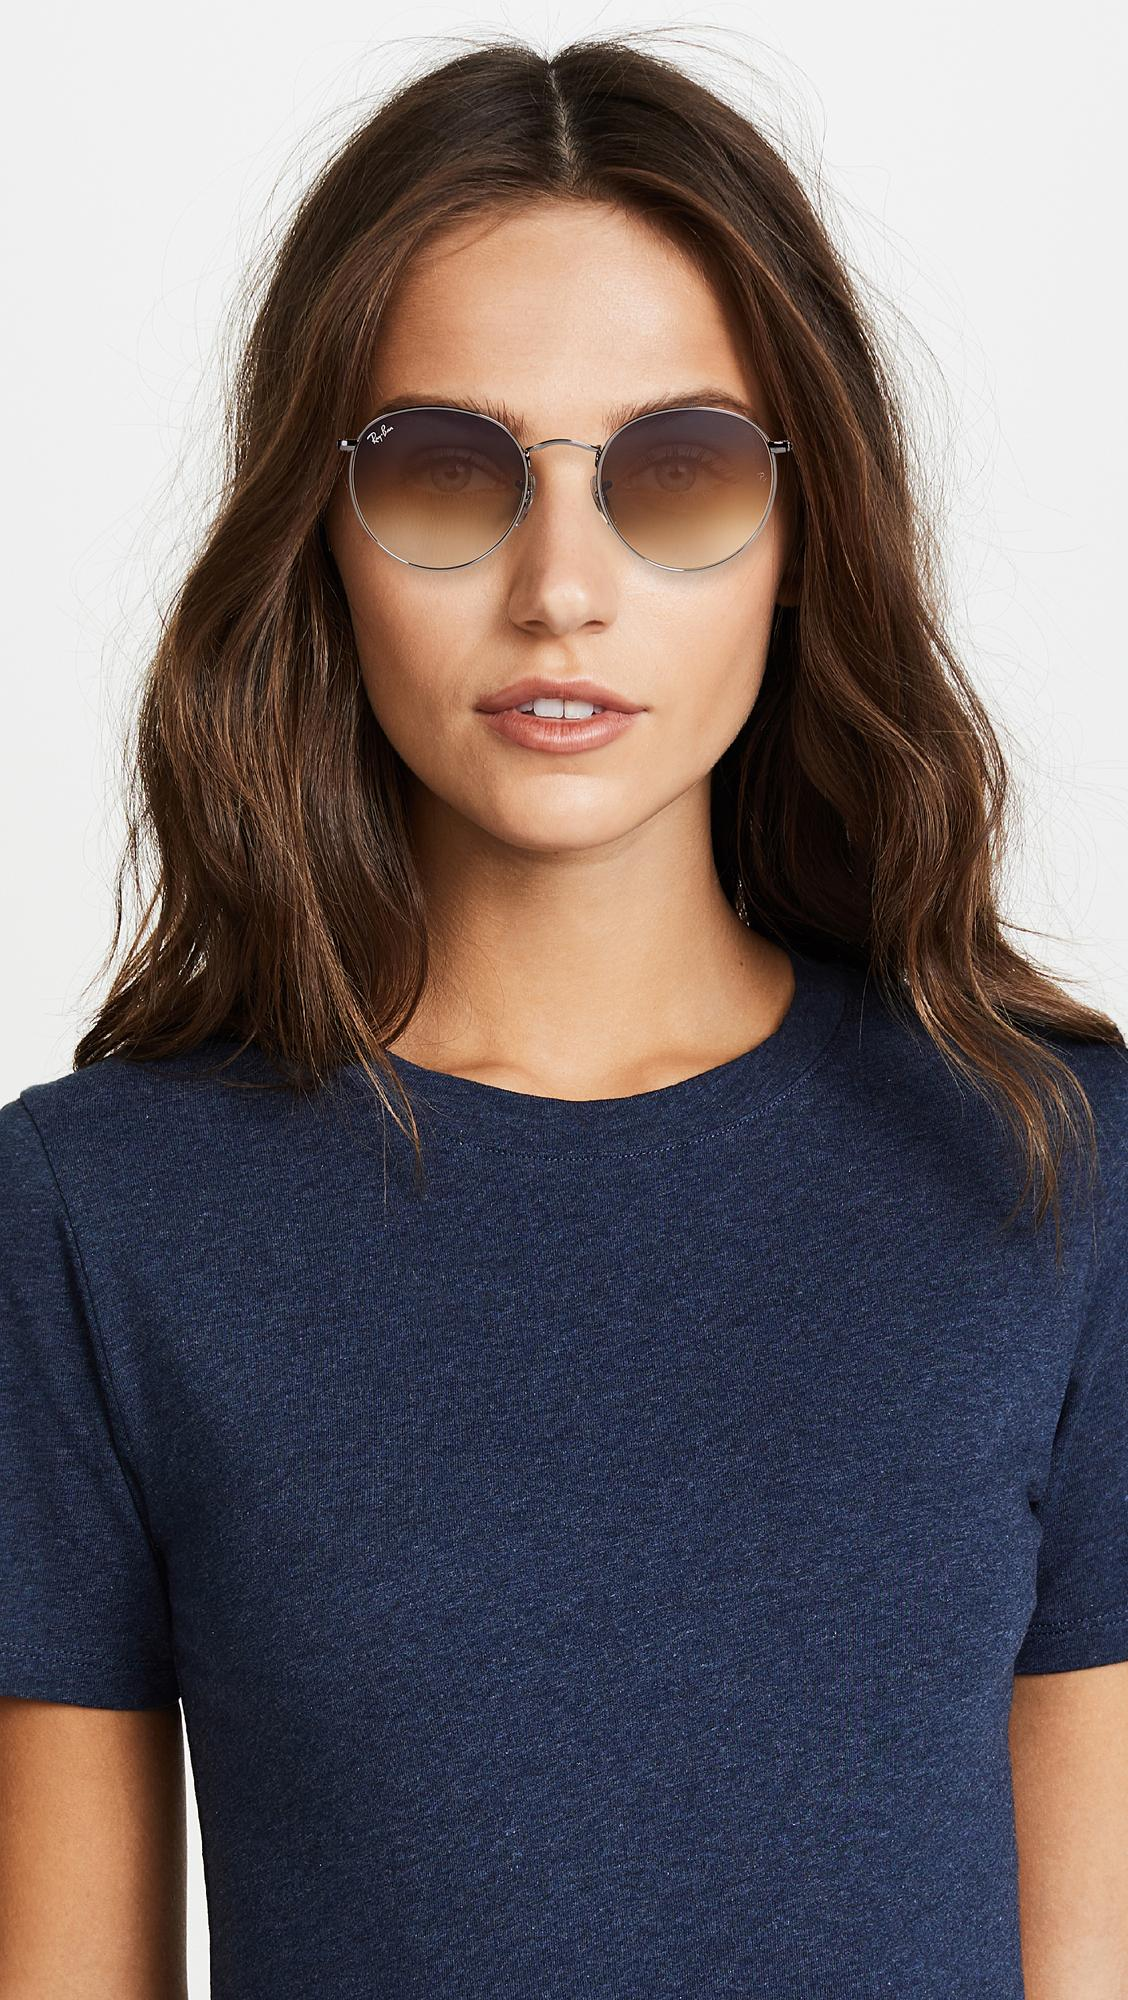 Ray-Ban Rb3447n Round Gradient Sunglasses